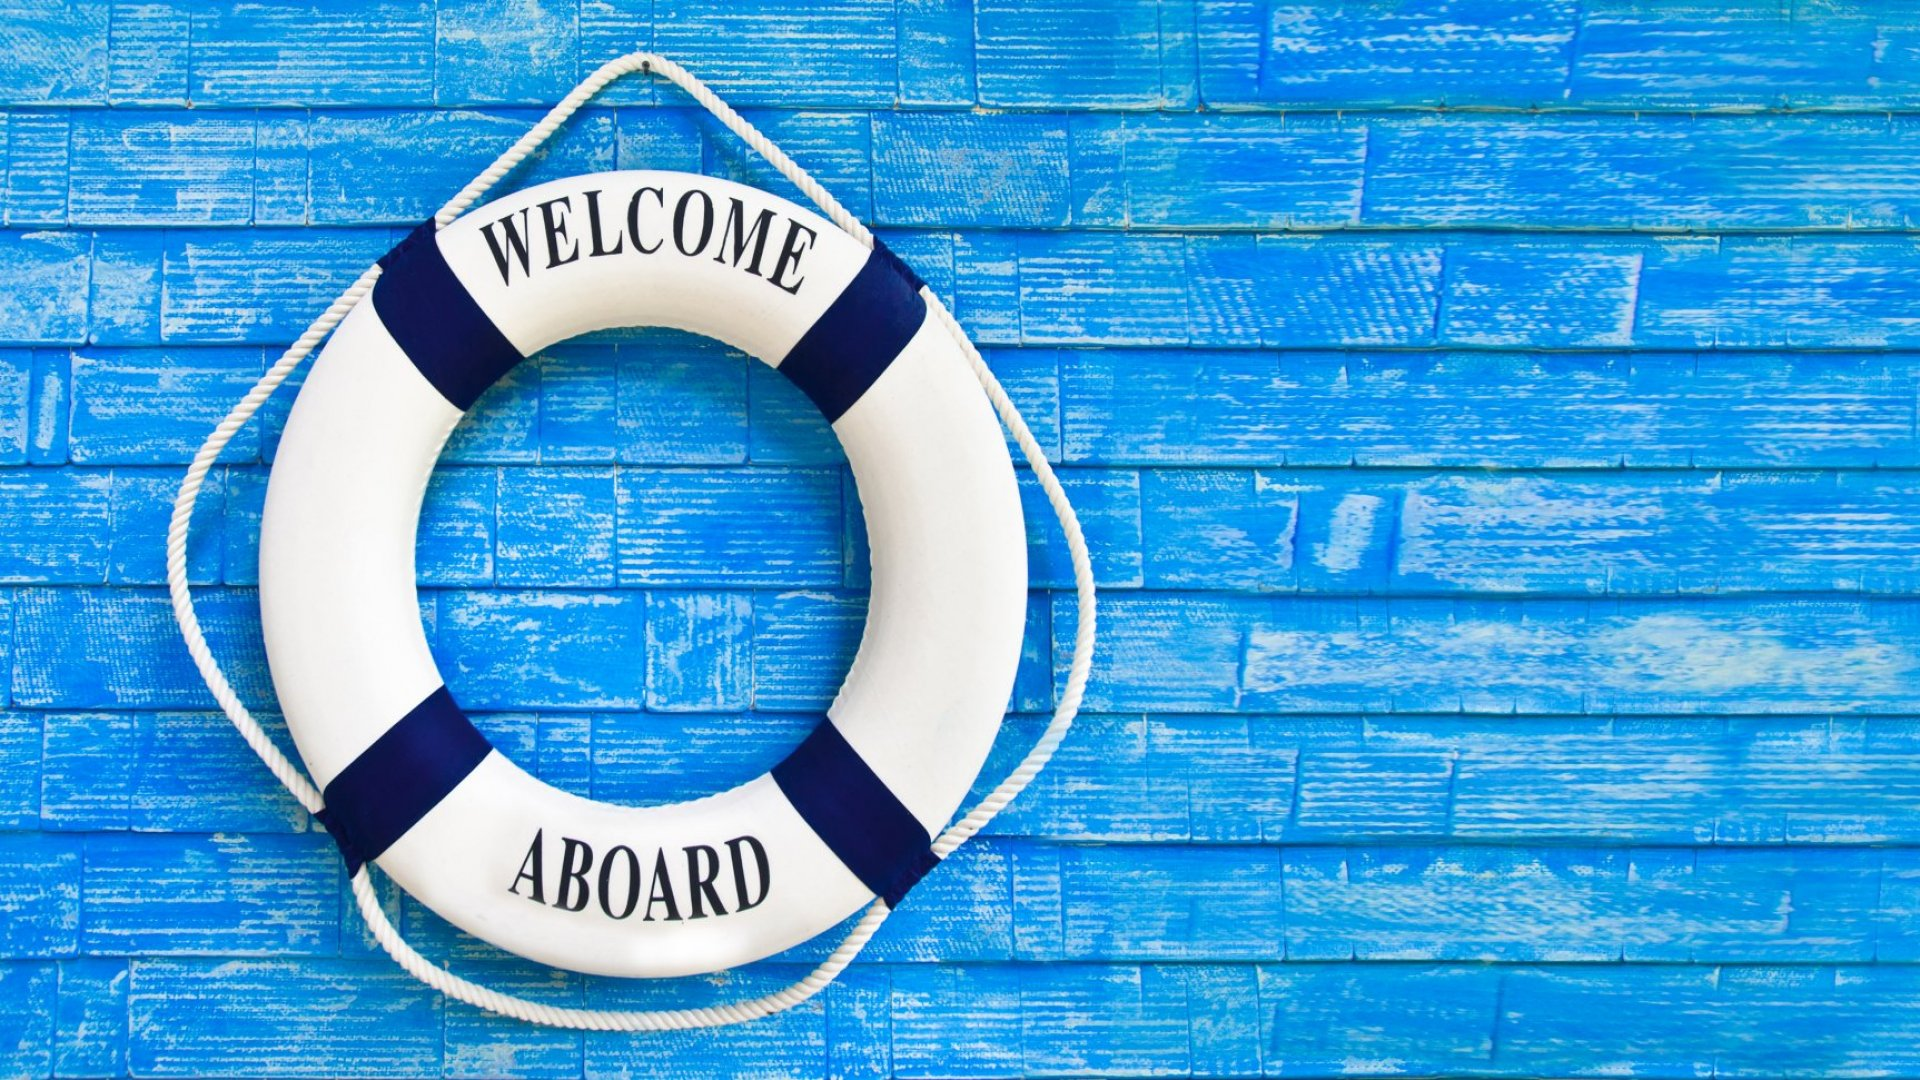 How good is your business at welcoming new customers aboard?